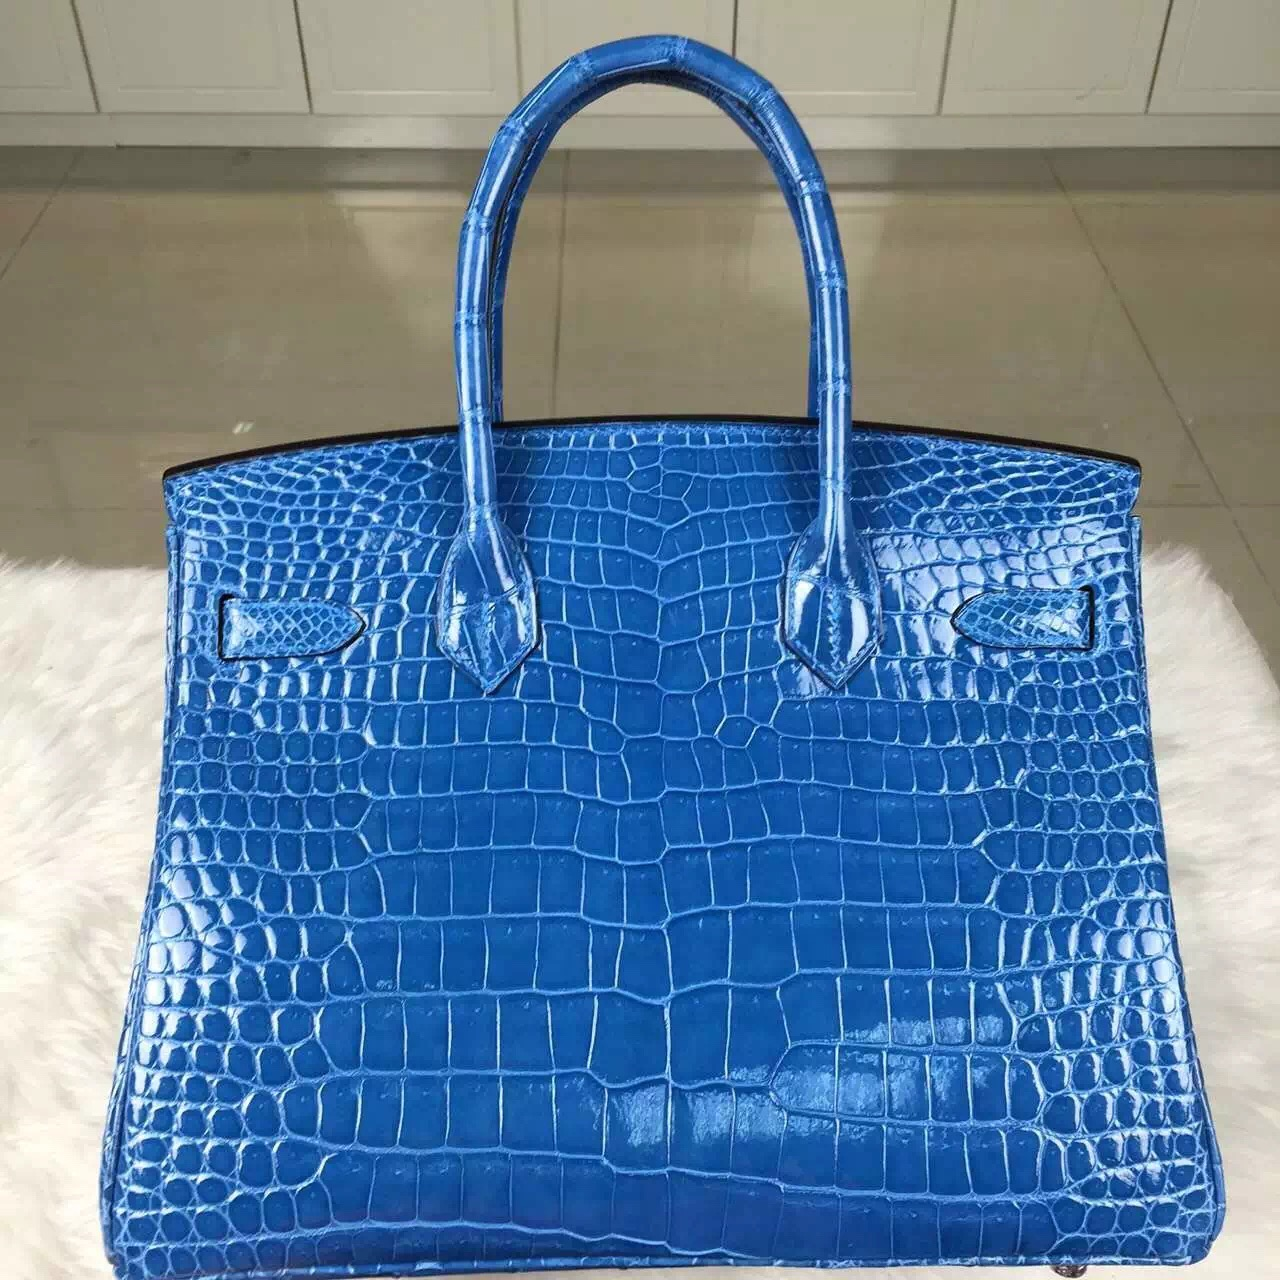 Discount Hermes 7Q Mykonos Blue Crocodile Leather Birkin30